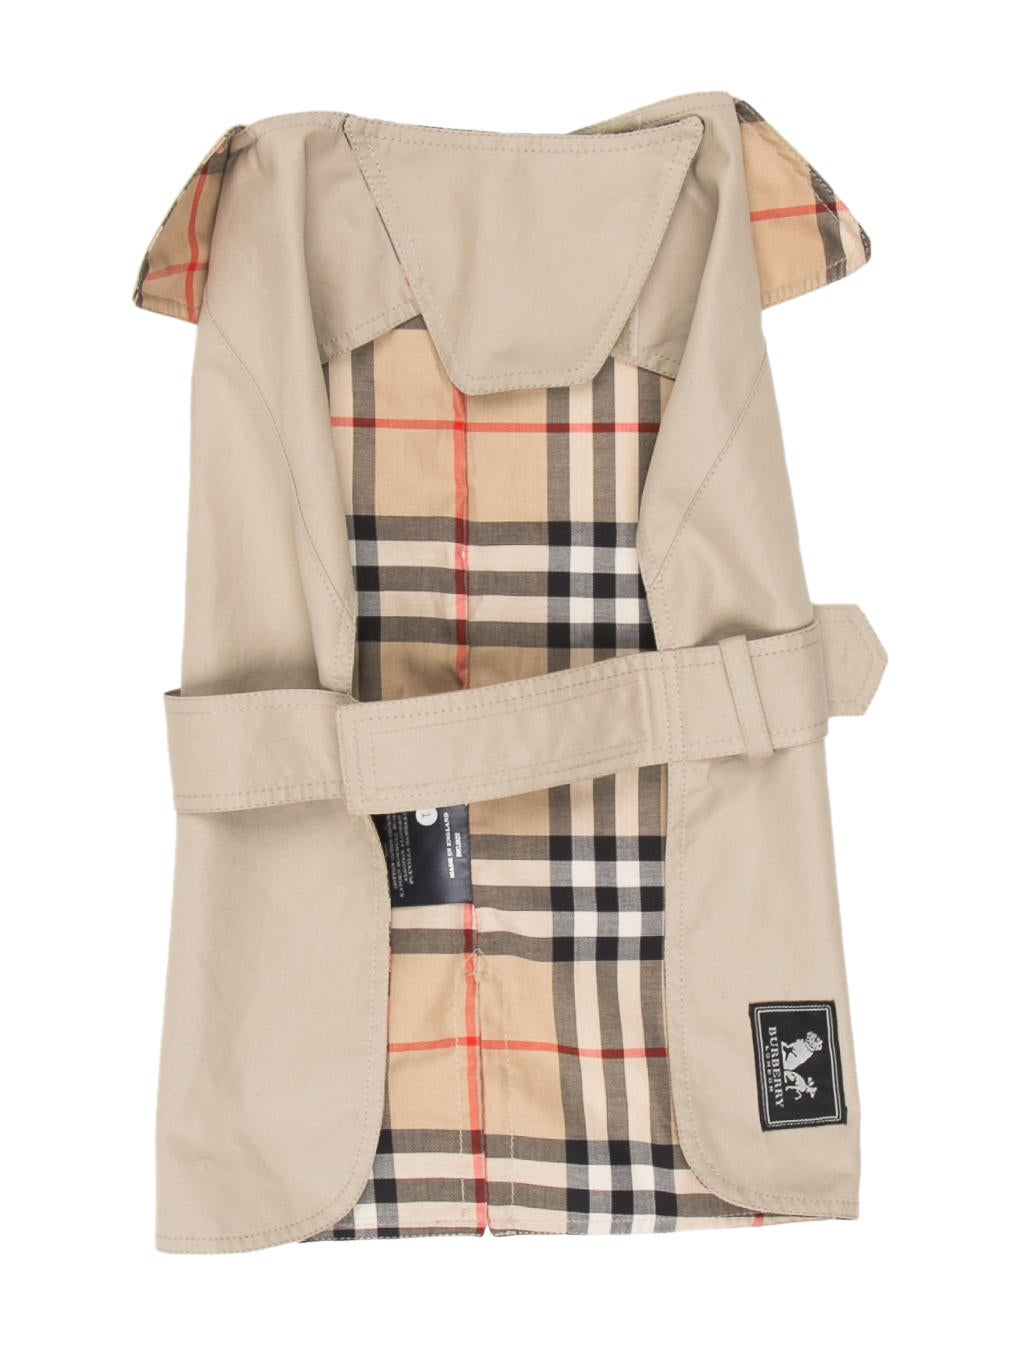 Burberry Dog Rain Coat - Decor   Accessories - BUR59699  55358674ebdf